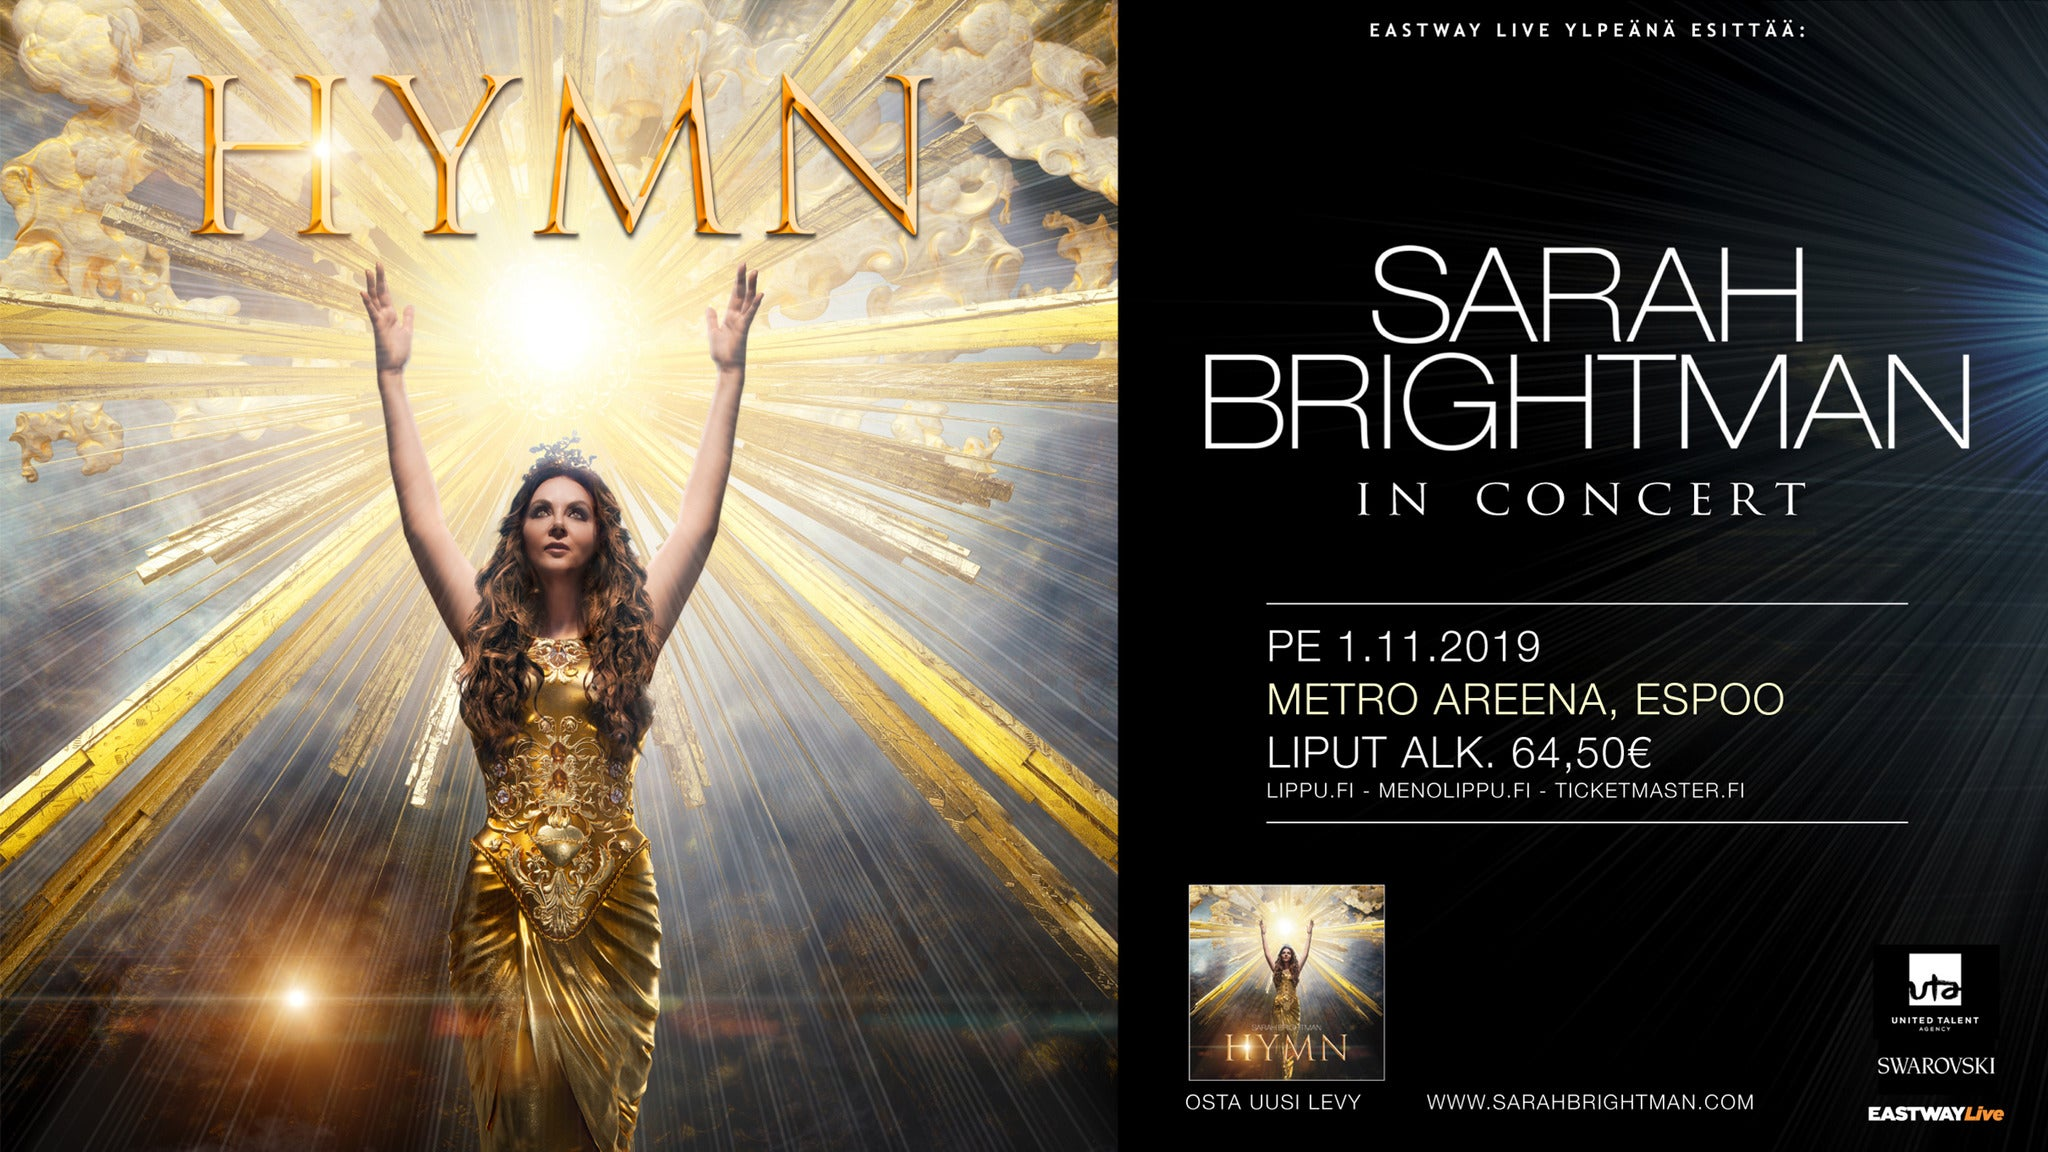 HYMN Sarah Brightman In Concert at The Mahaffey Theater